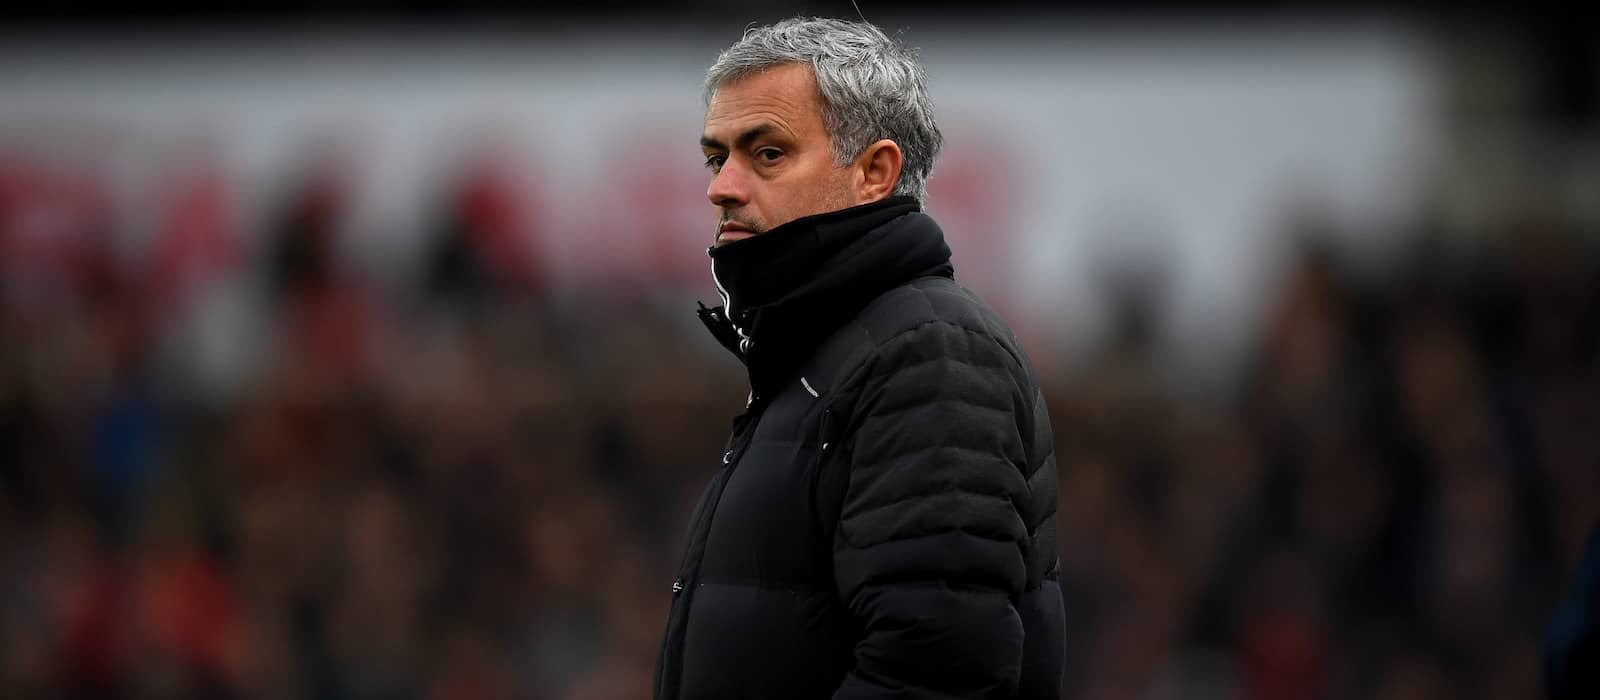 Jose Mourinho hits out against Jurgen Klopp for double referee standards